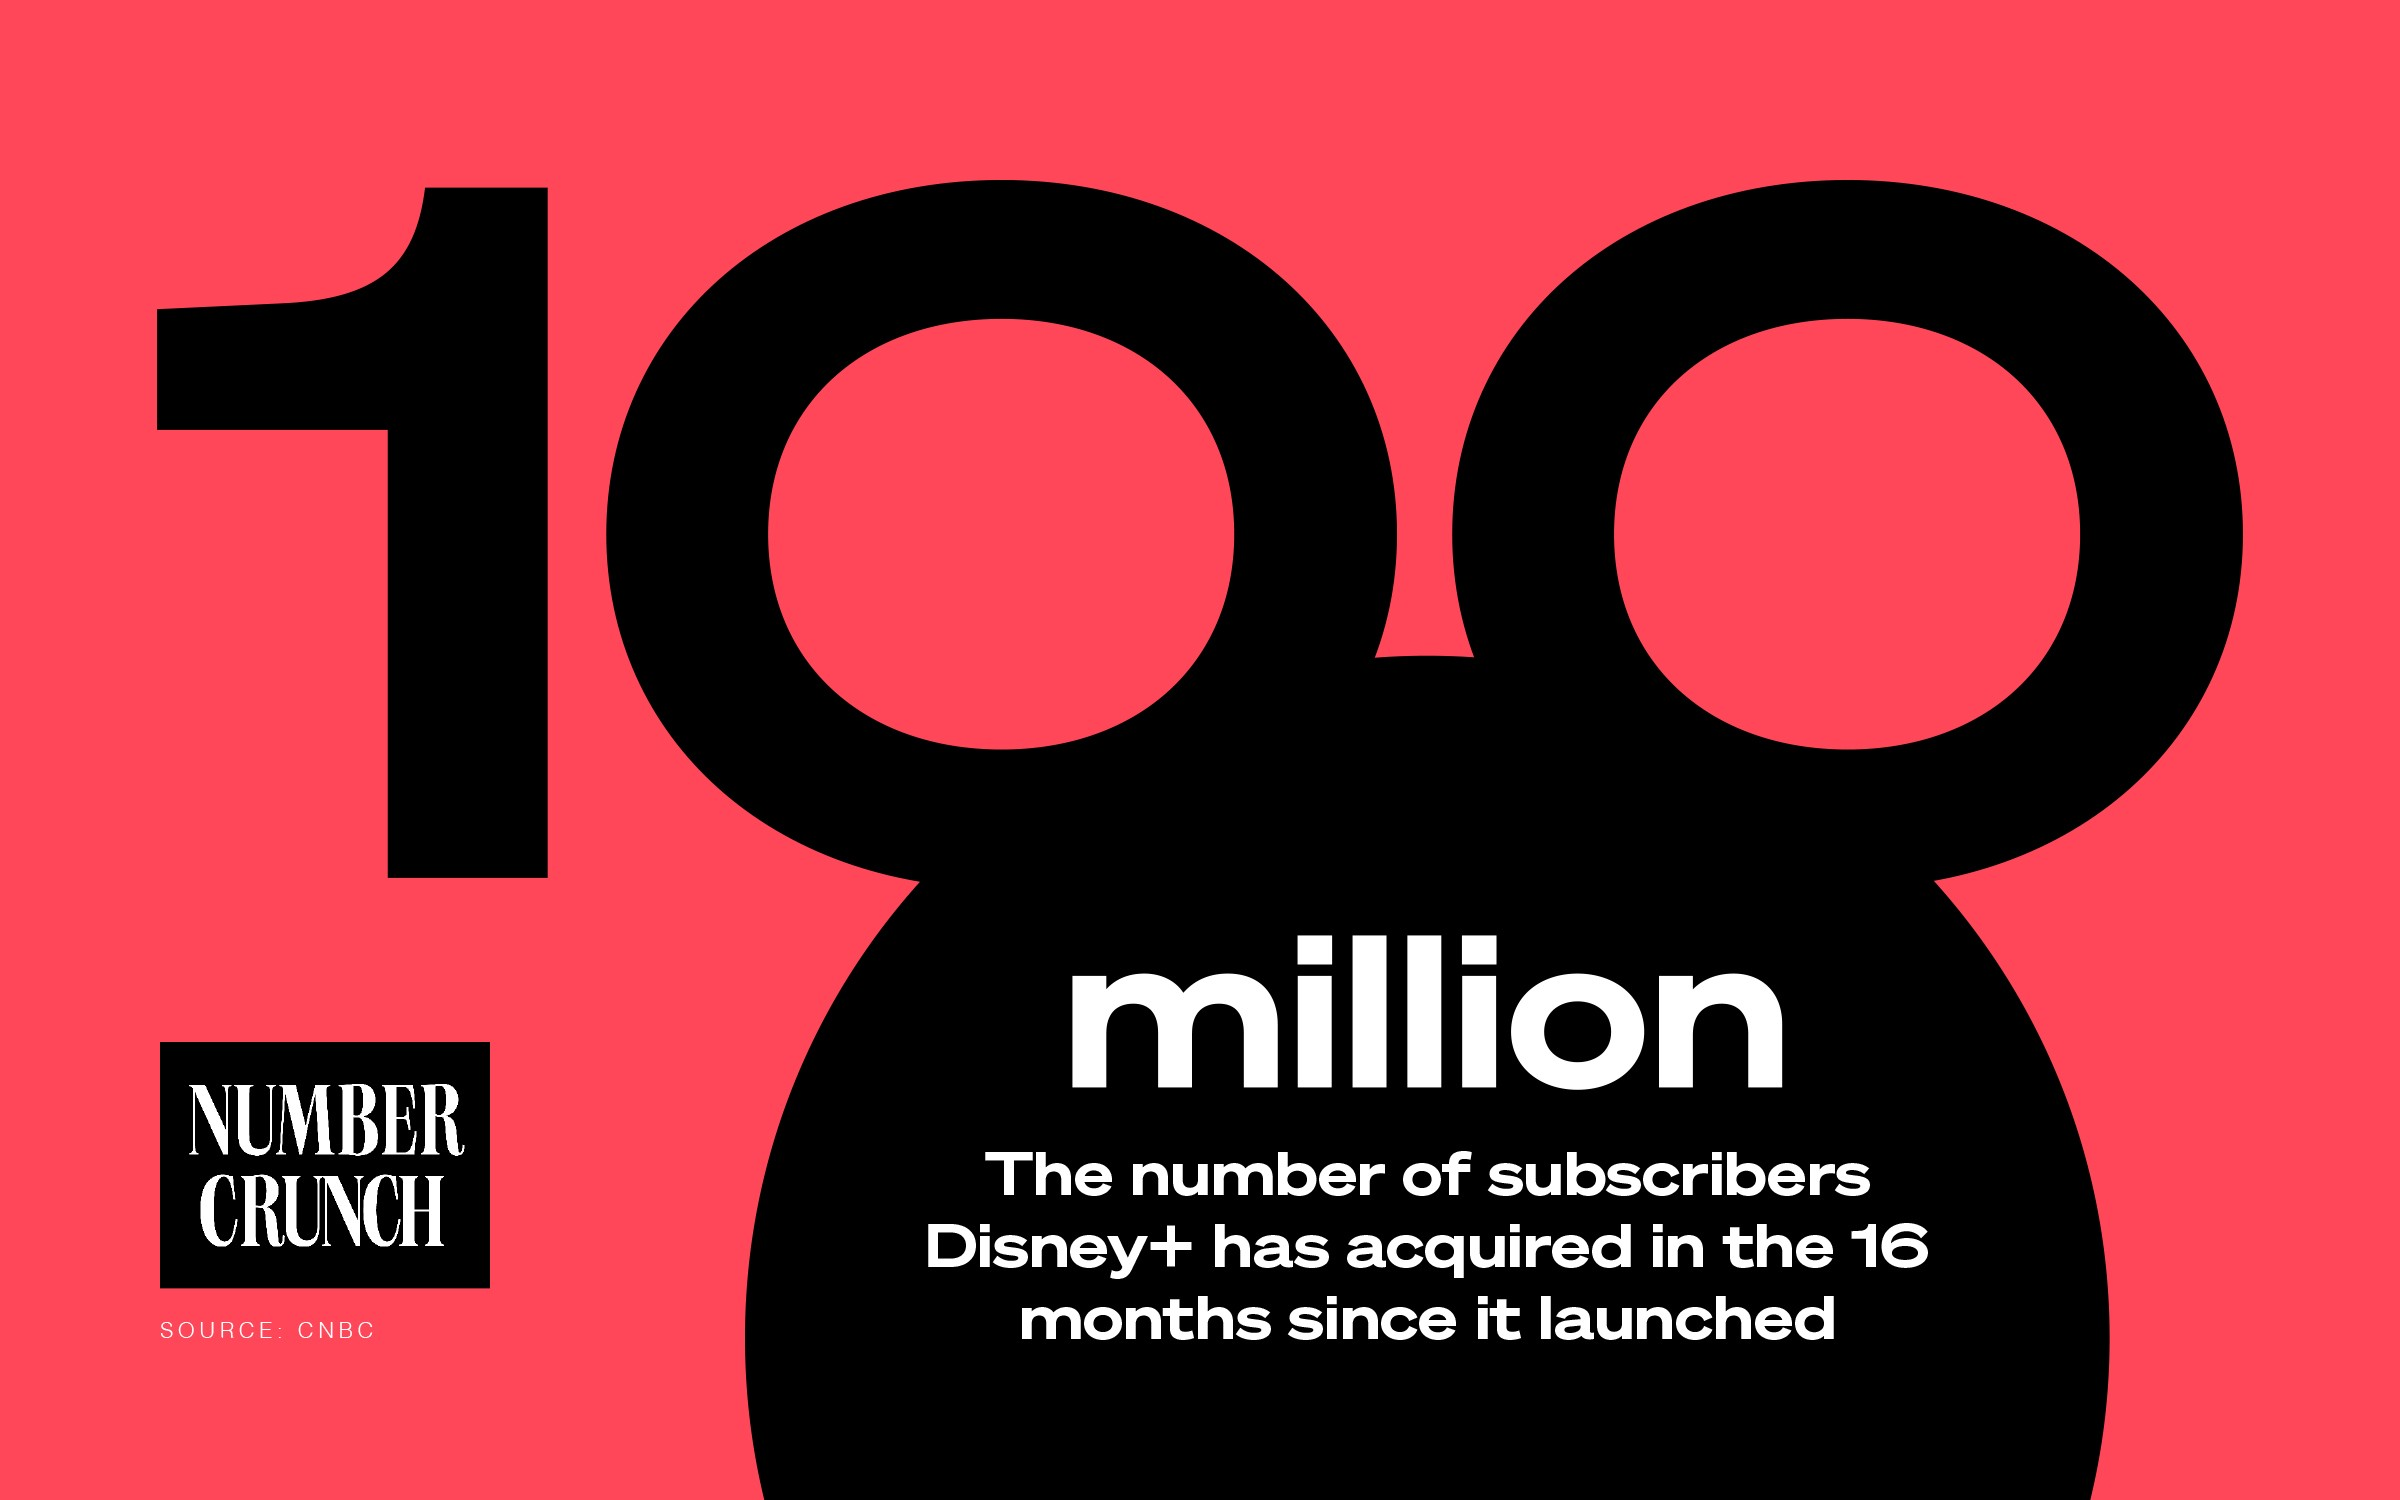 """""""100 million: The number of subscribers Disney+ has acquired in the 16 months since it launched Source: CNBC"""" next to the """"Number Crunch"""" logo. The """"00"""" in the 100 million is placed above a black circle to look like mouse ears."""